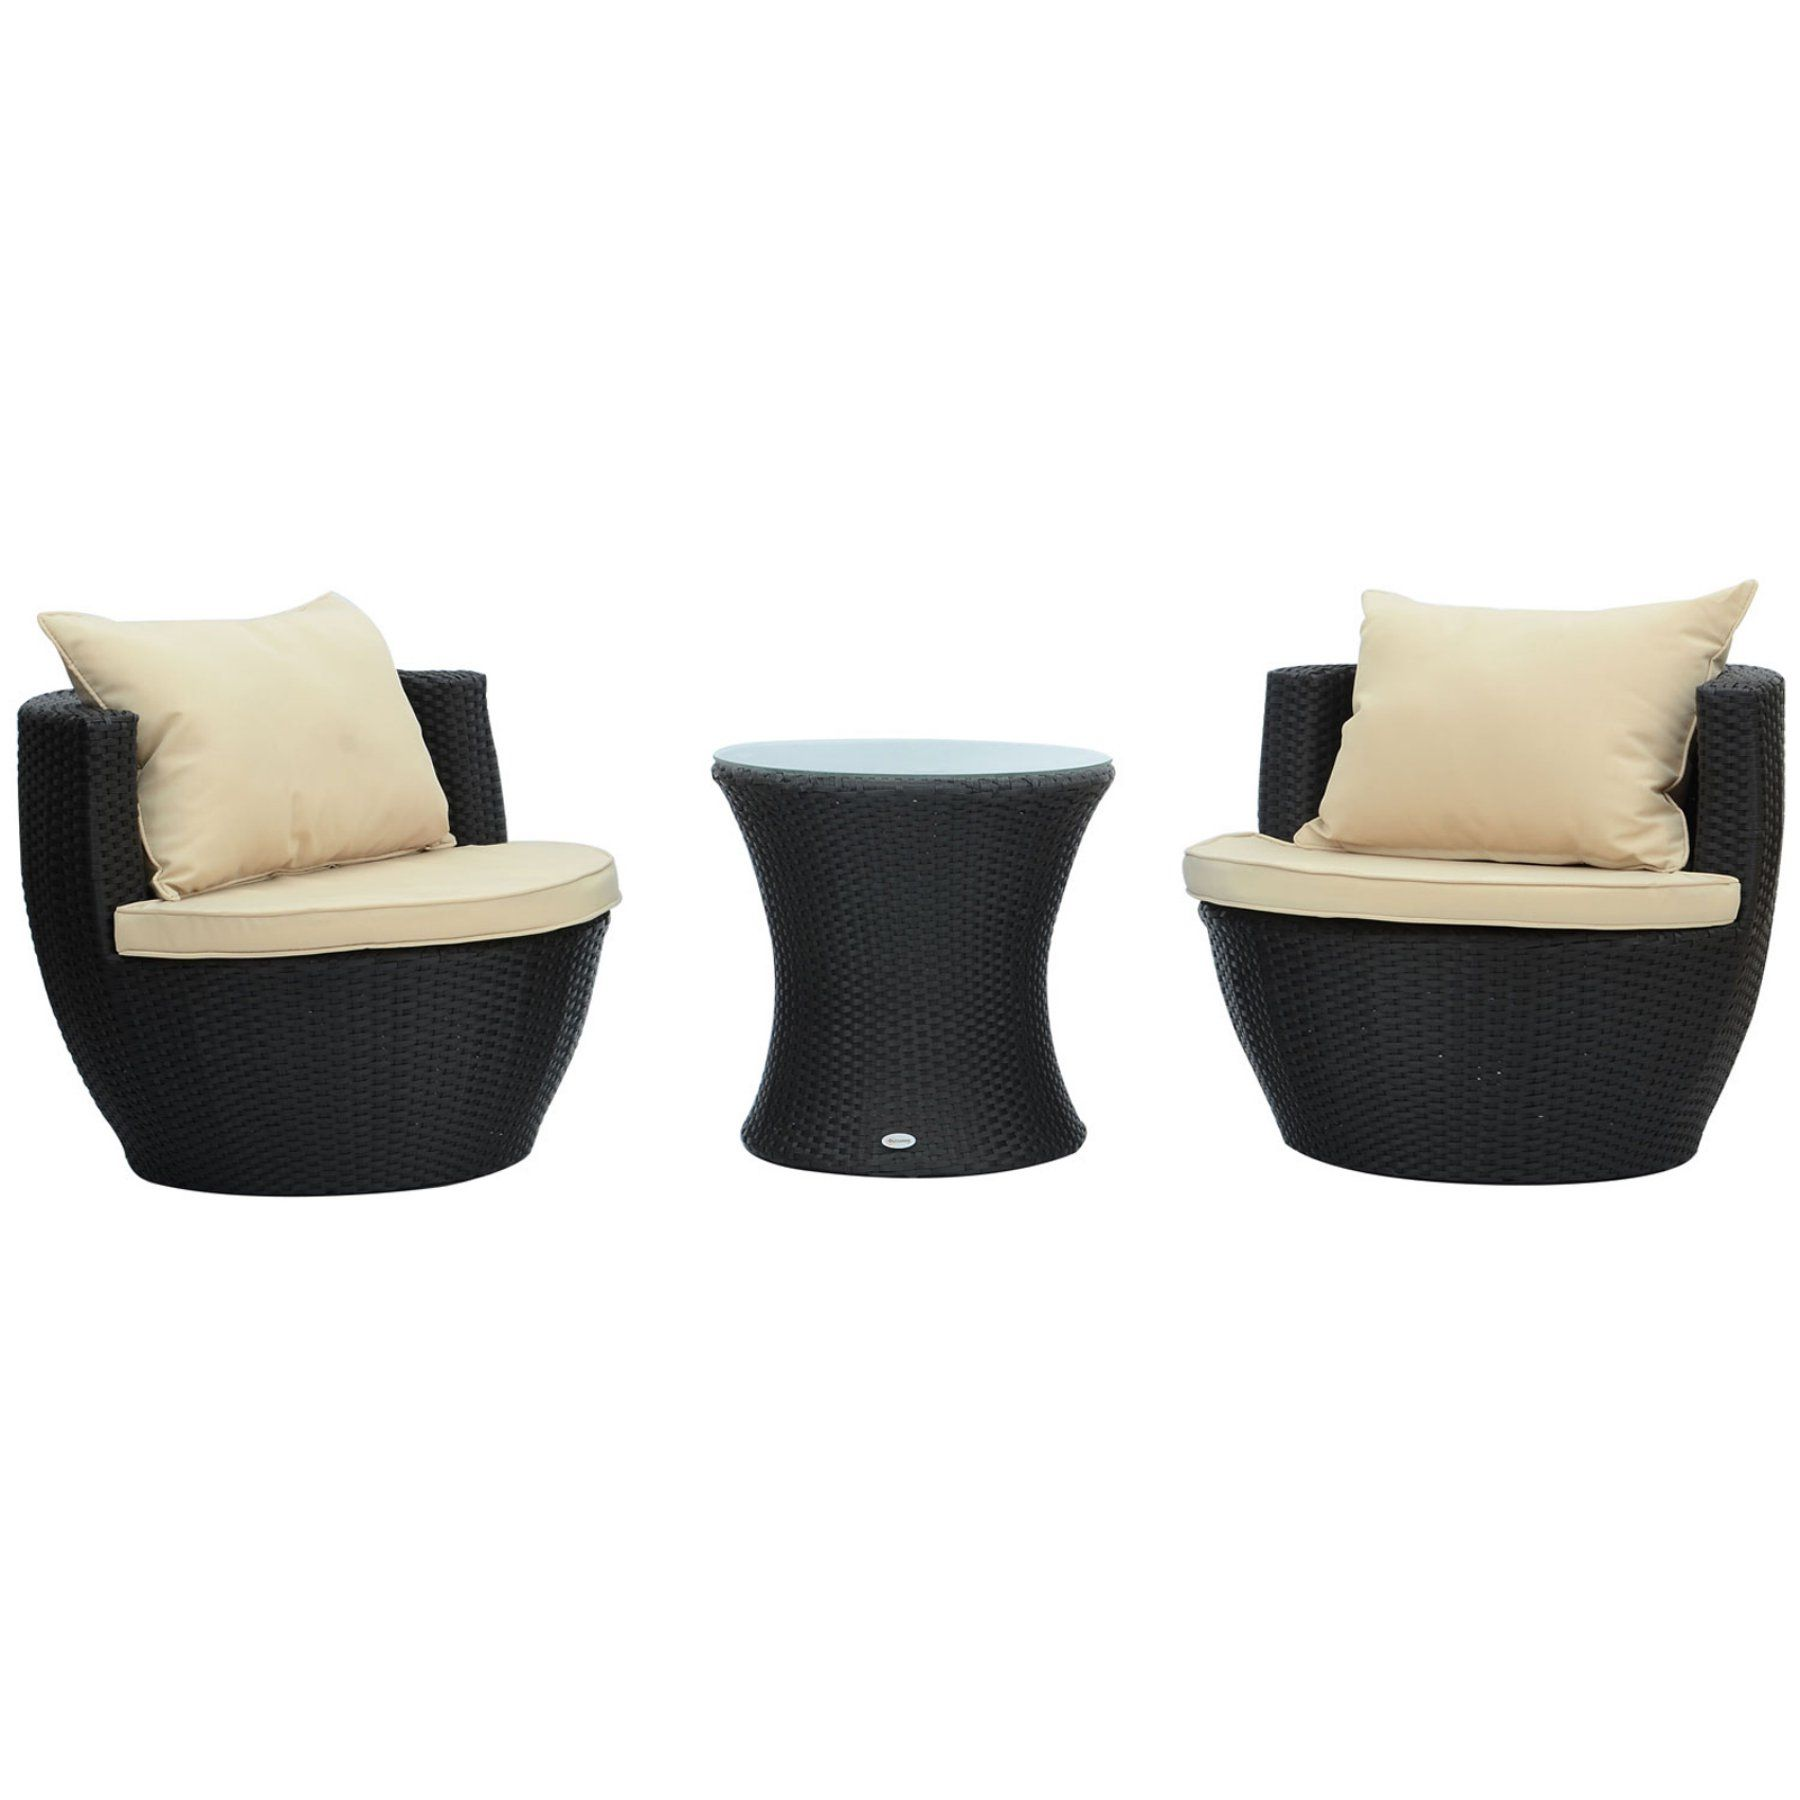 Outsunny 3 piece rattan wicker outdoor stacking patio chair set 01 0588